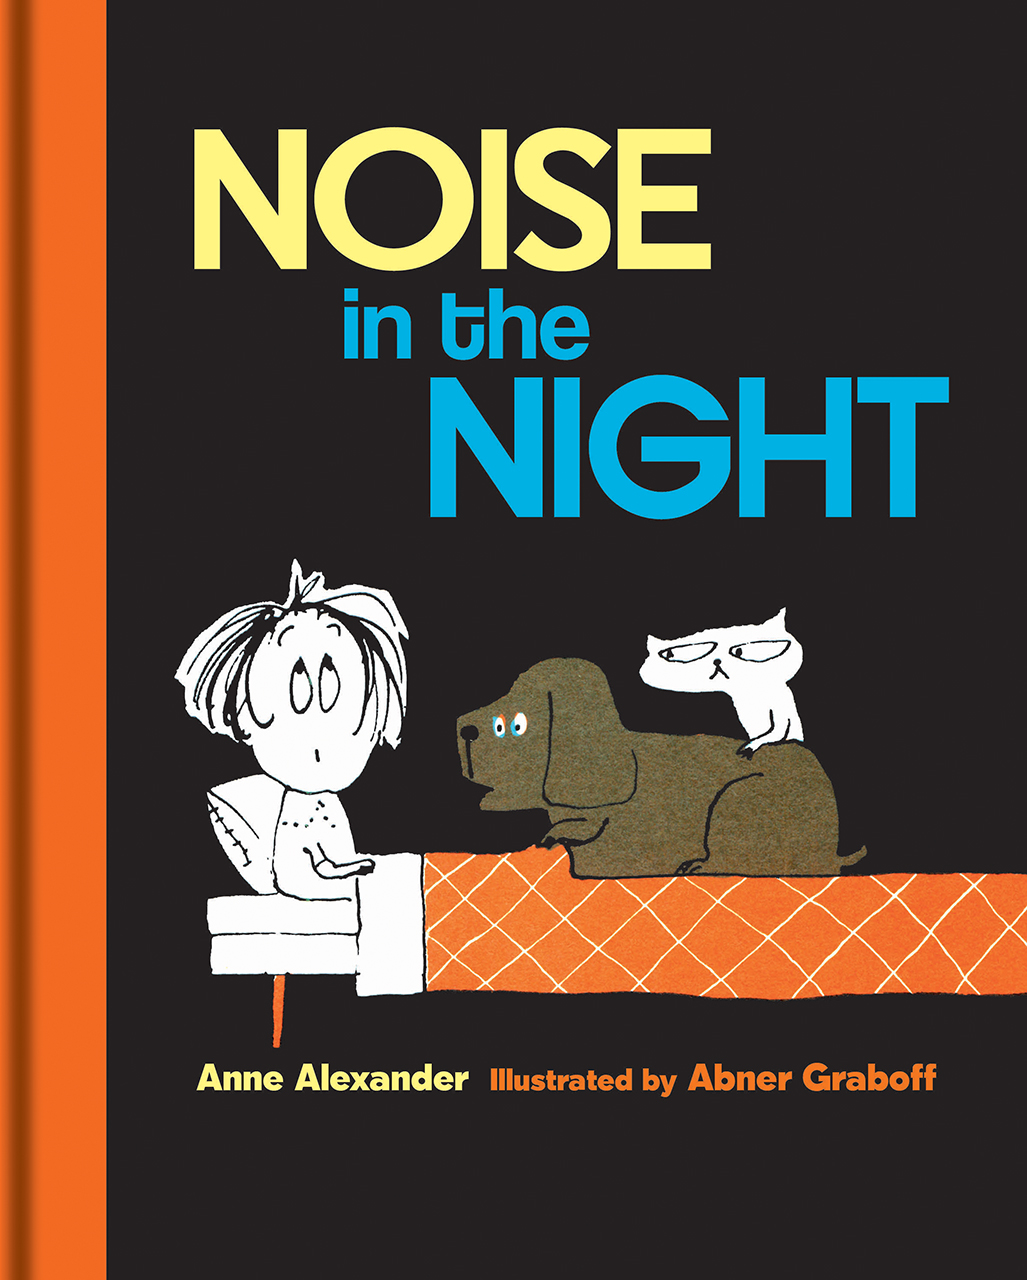 Noise in the night alexander graboff noise in the night addthis sharing buttons publicscrutiny Image collections